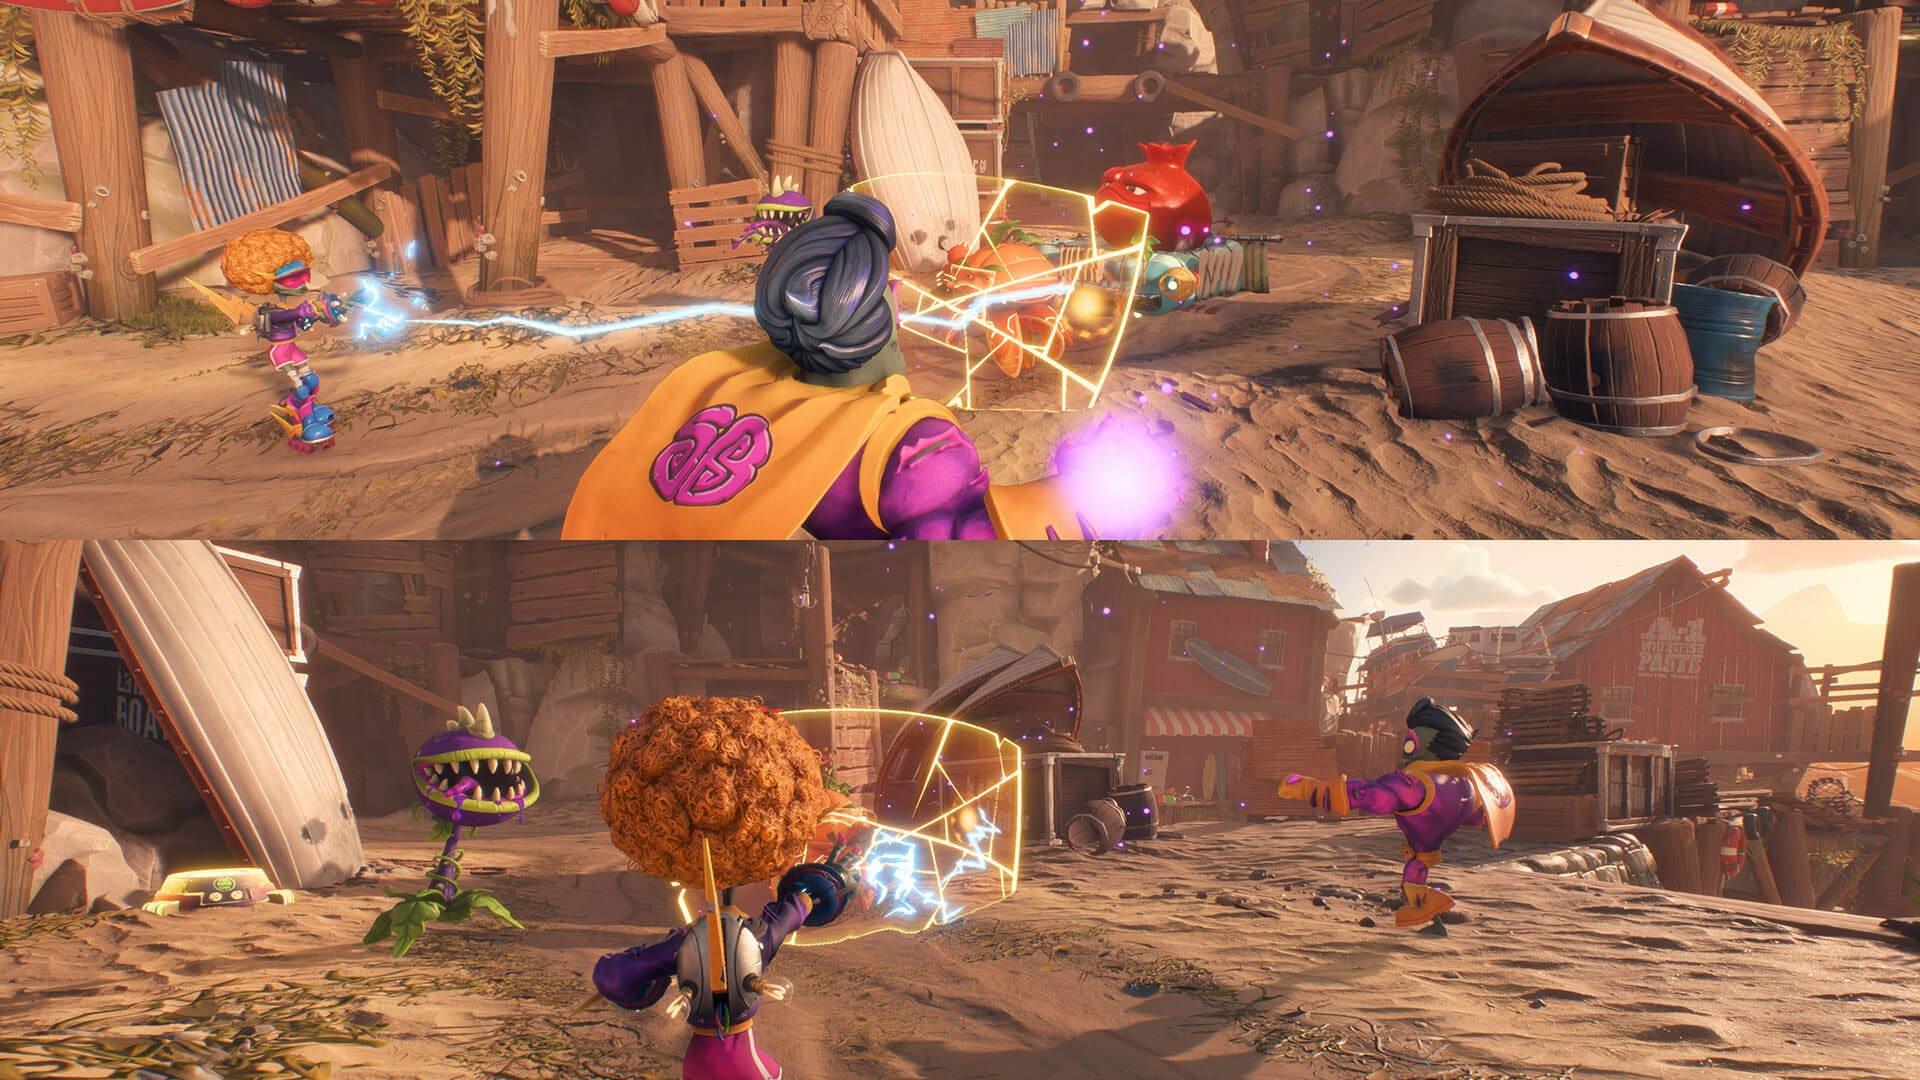 To play split-screen in Battle for Neighborville, you can hold the Square button on PS4 or X button on Xbox One